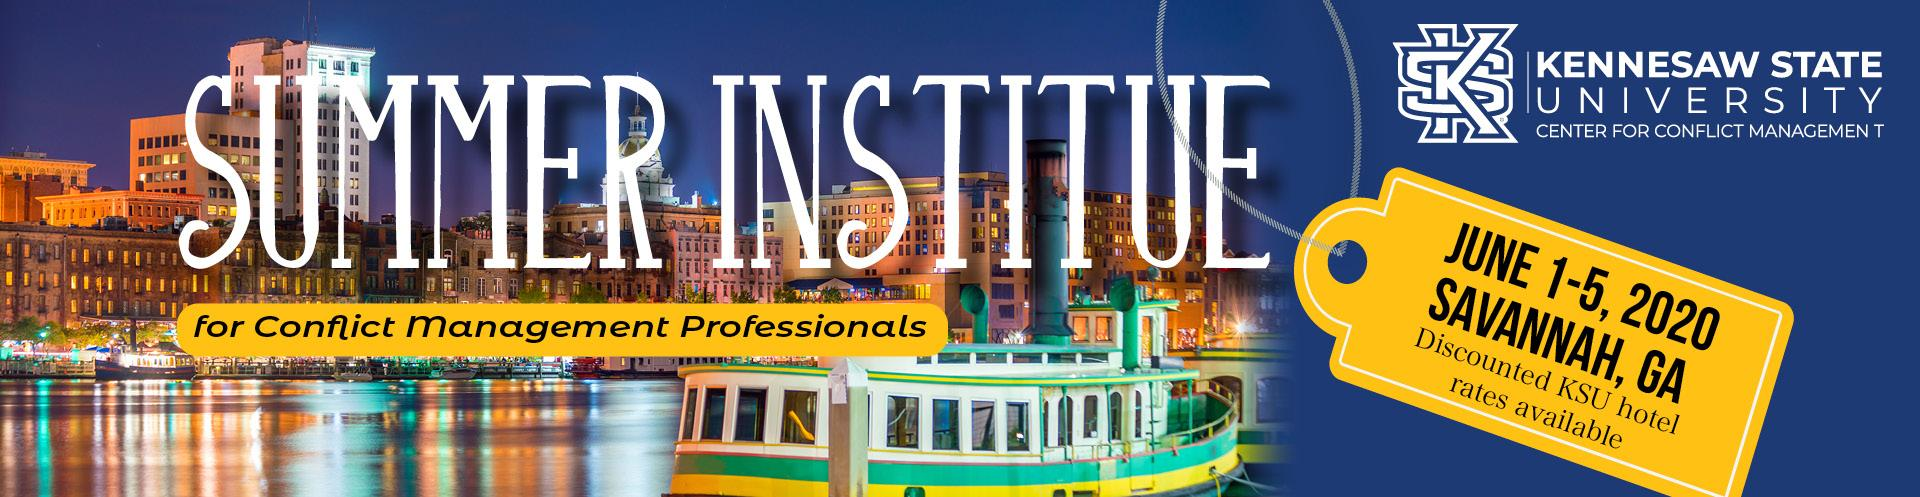 June 1-5 Summer Institute in Savannah, GA